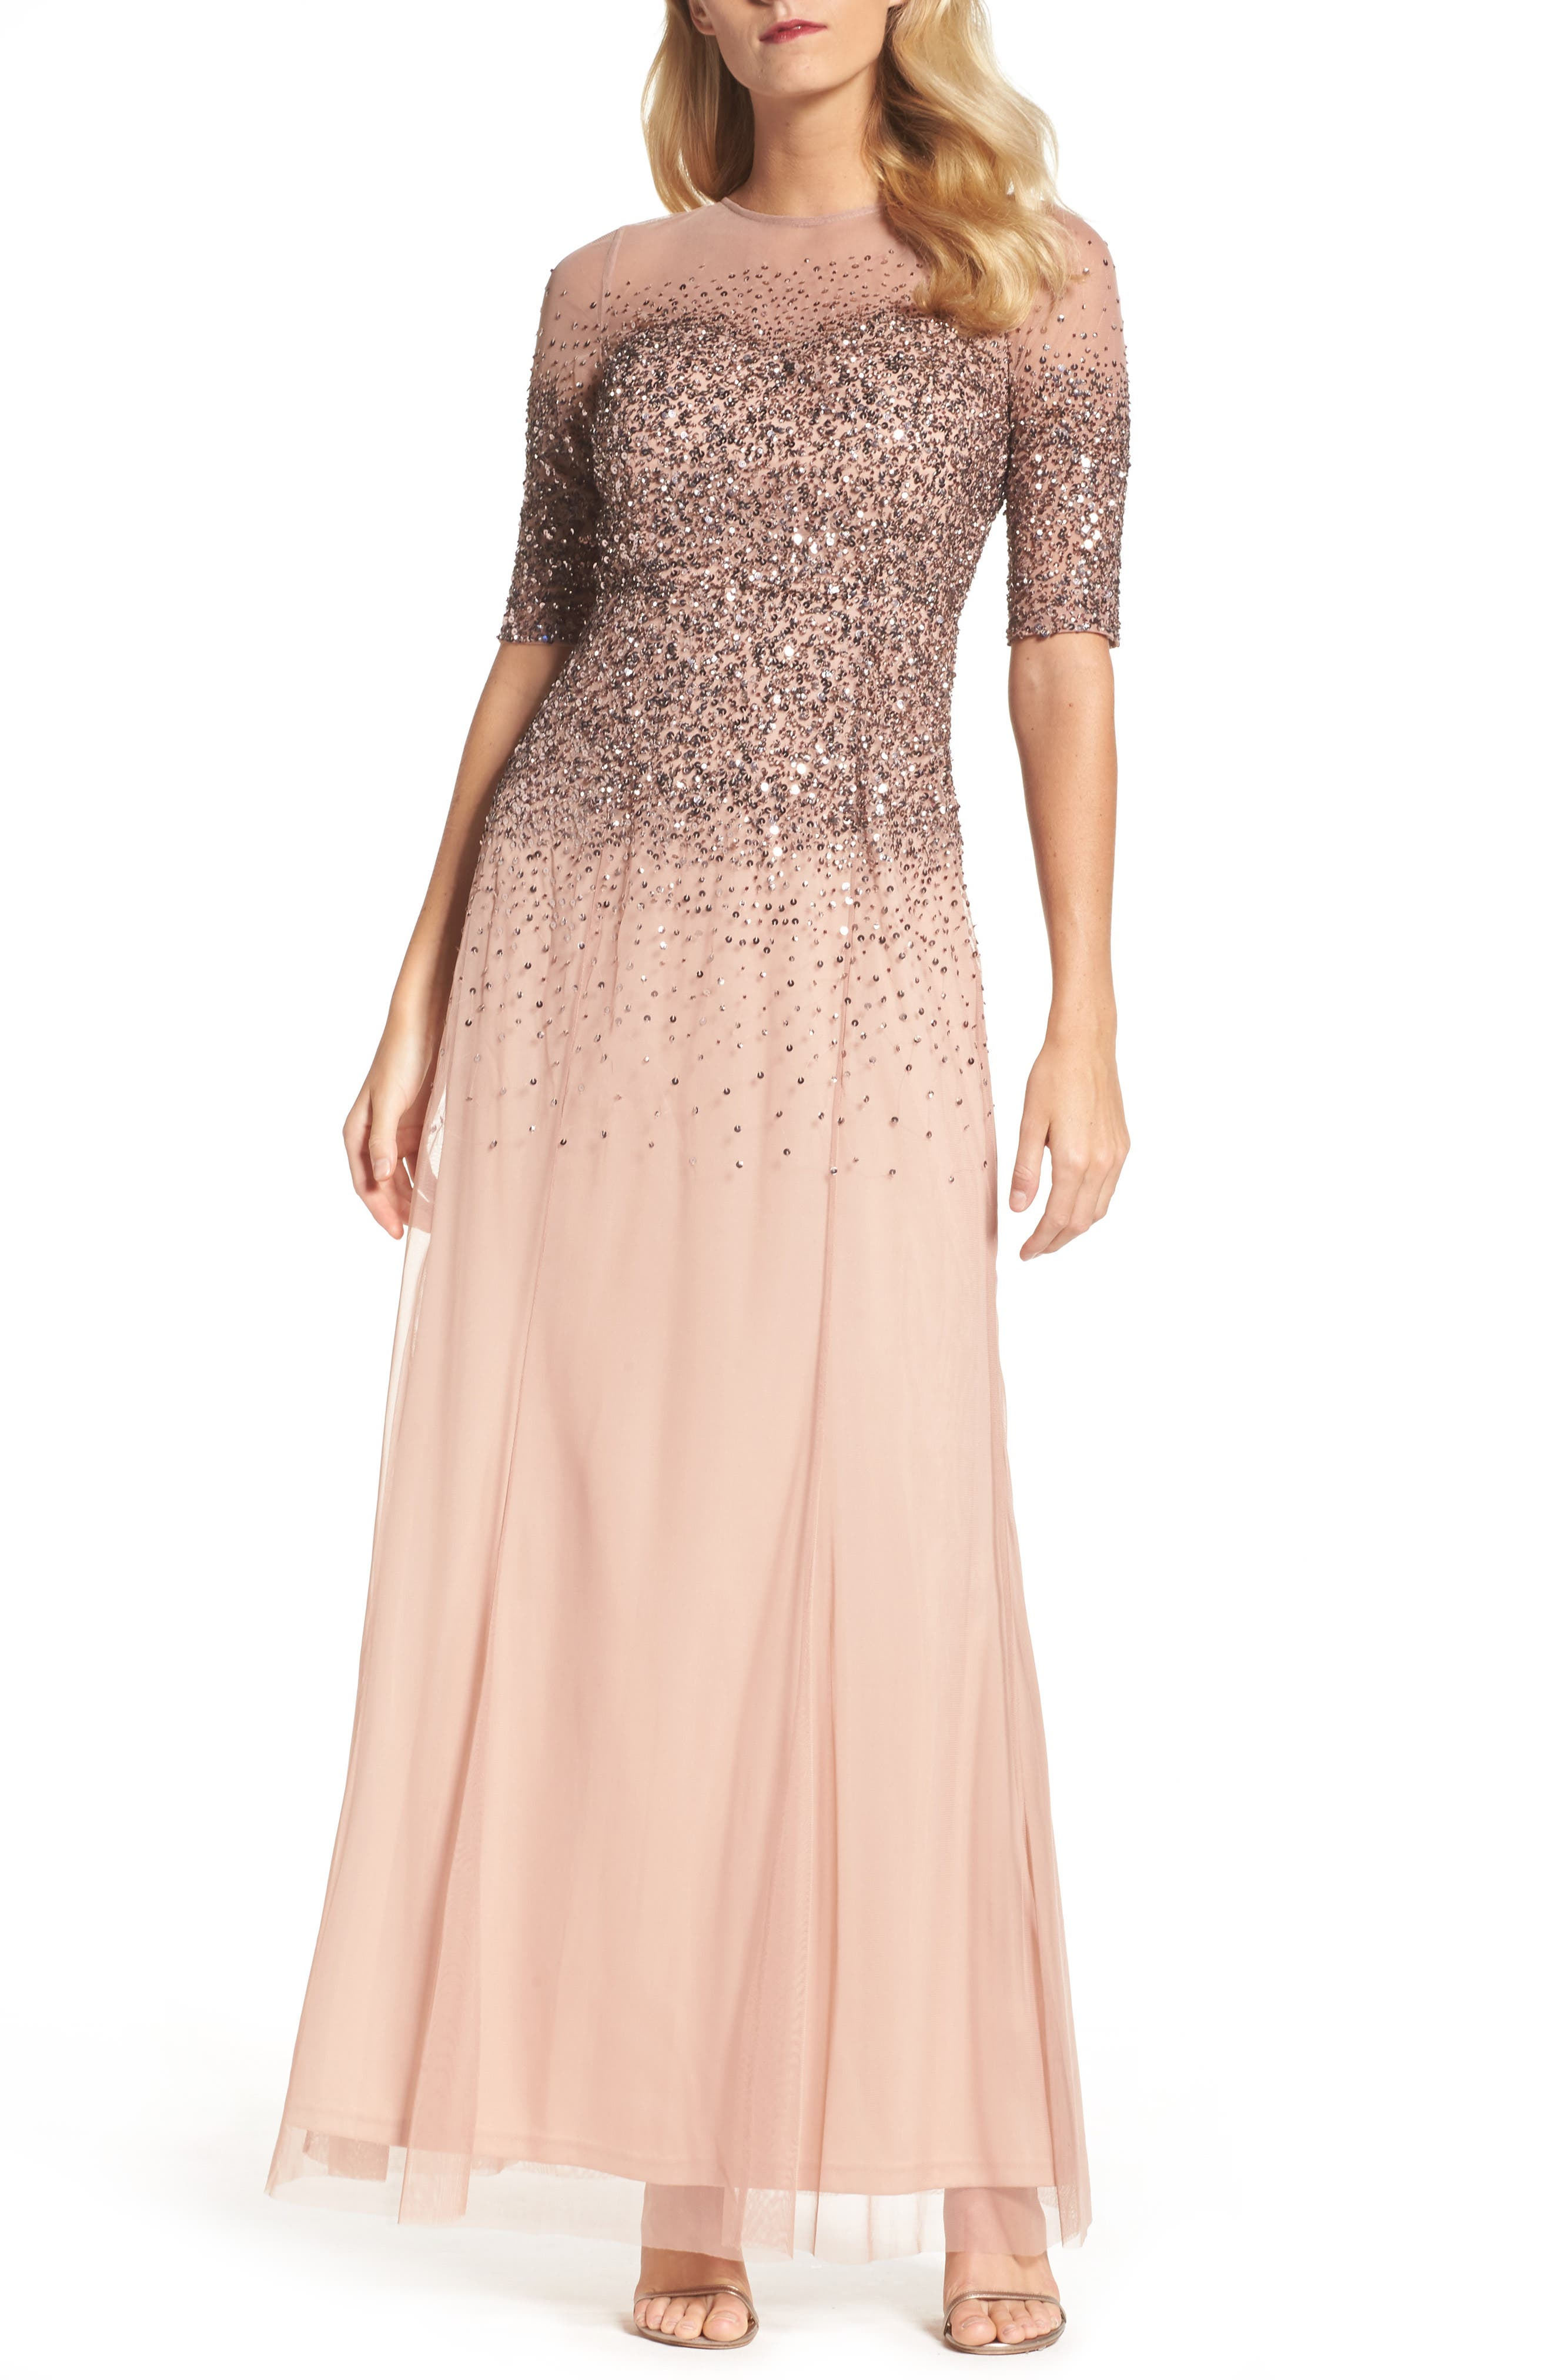 Adrianna Papell Beaded Illusion Bodice Mesh Gown